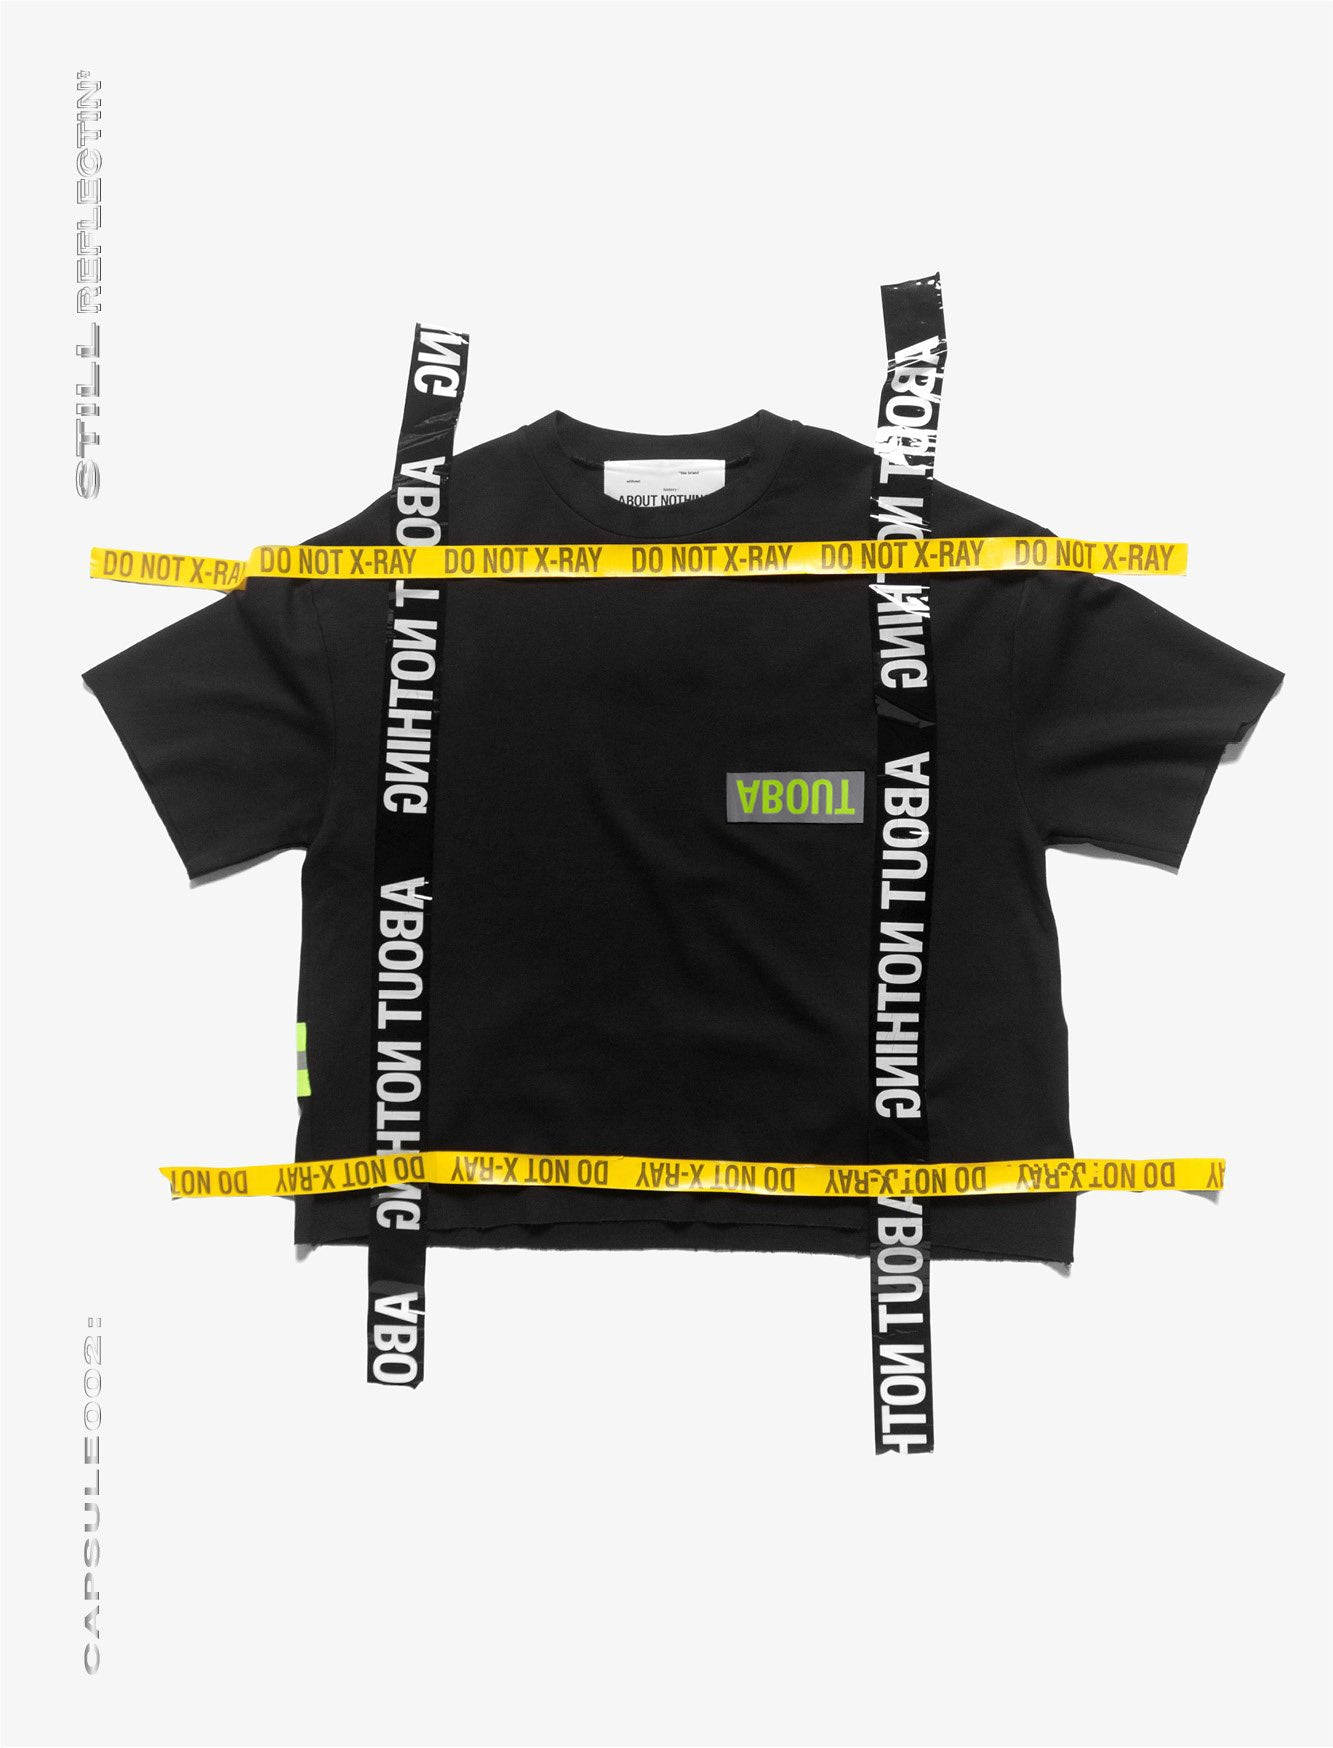 OVERSIZED T_SHIRT //REFLECTIVE STRAP  *SPECIAL EDITION [1/1] part. III